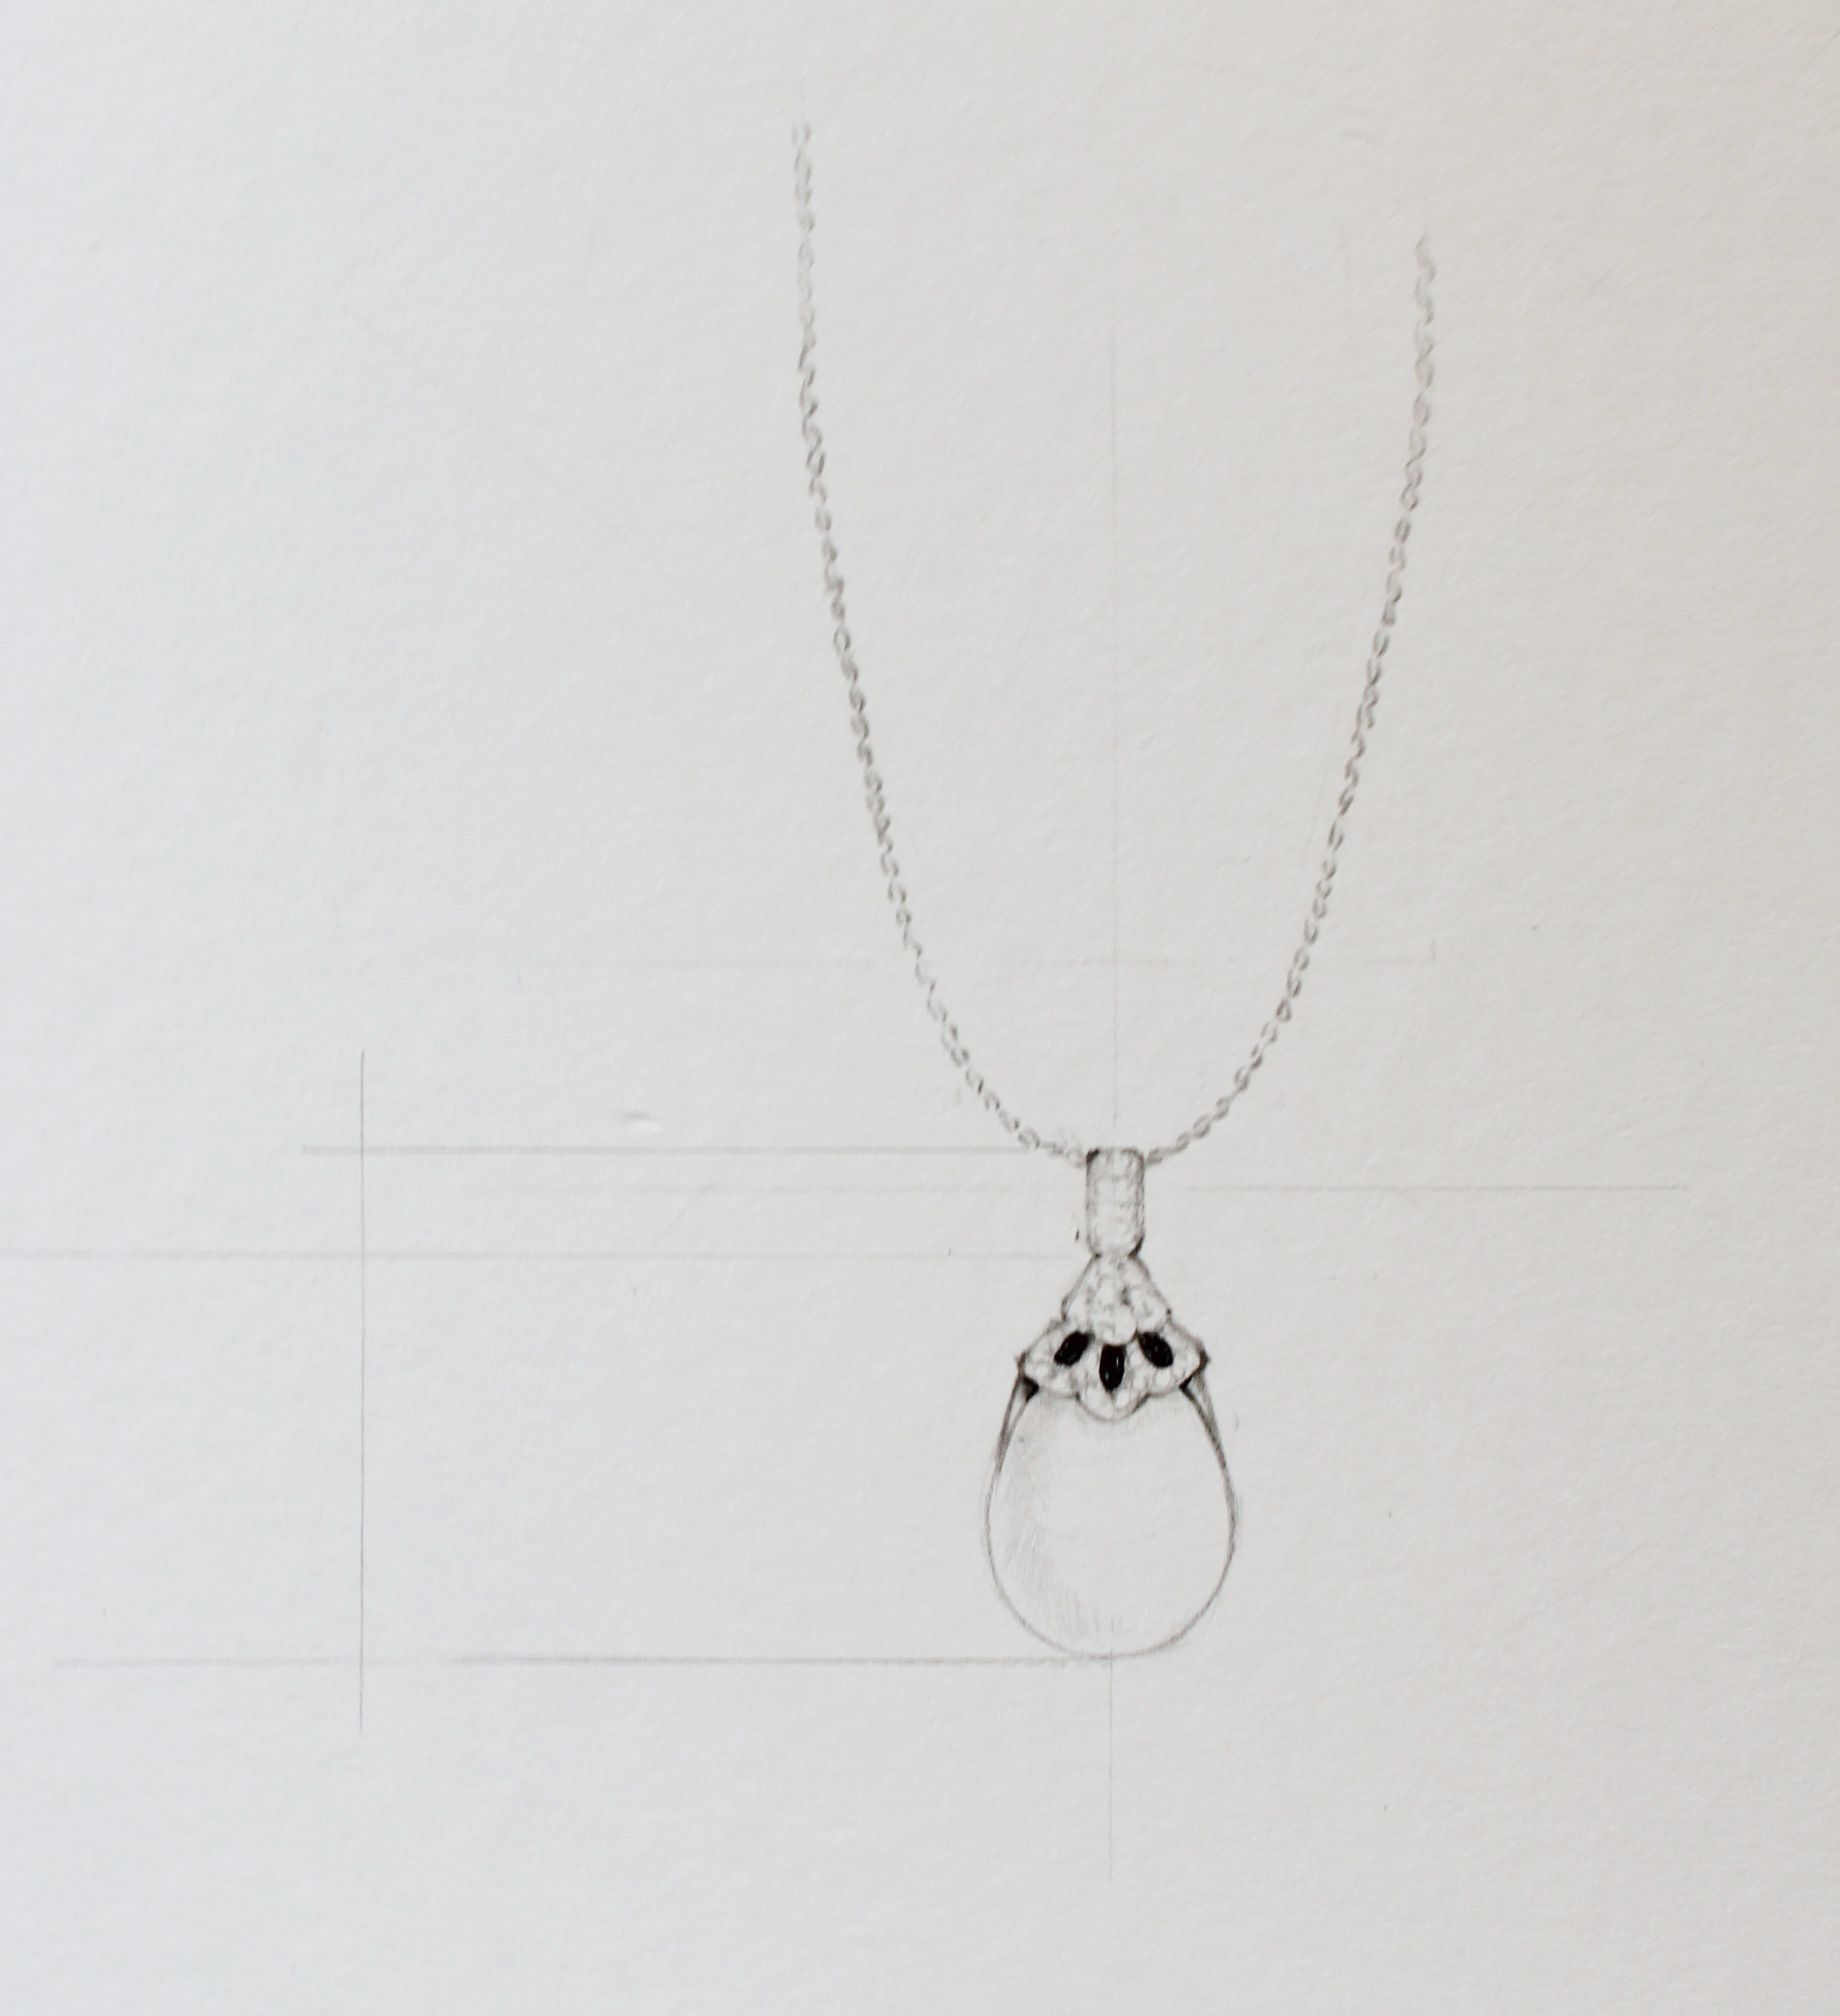 Drawing And Designing Jewelry How To Draw Necklaces And Bracelets